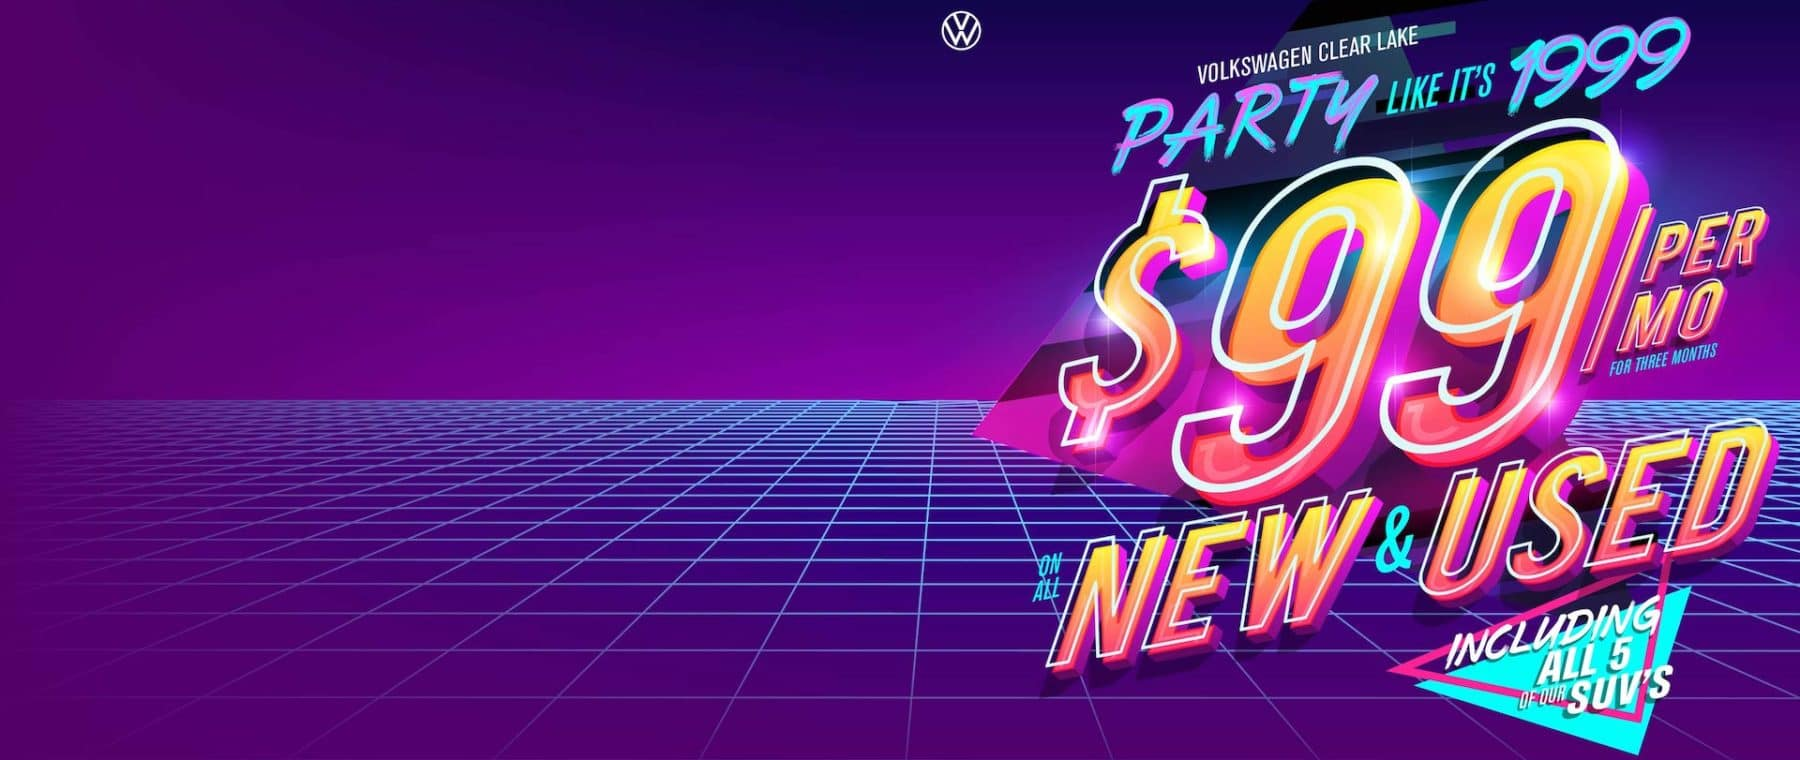 Party like it's 1999 at VW Clear Lake with $99 payments!